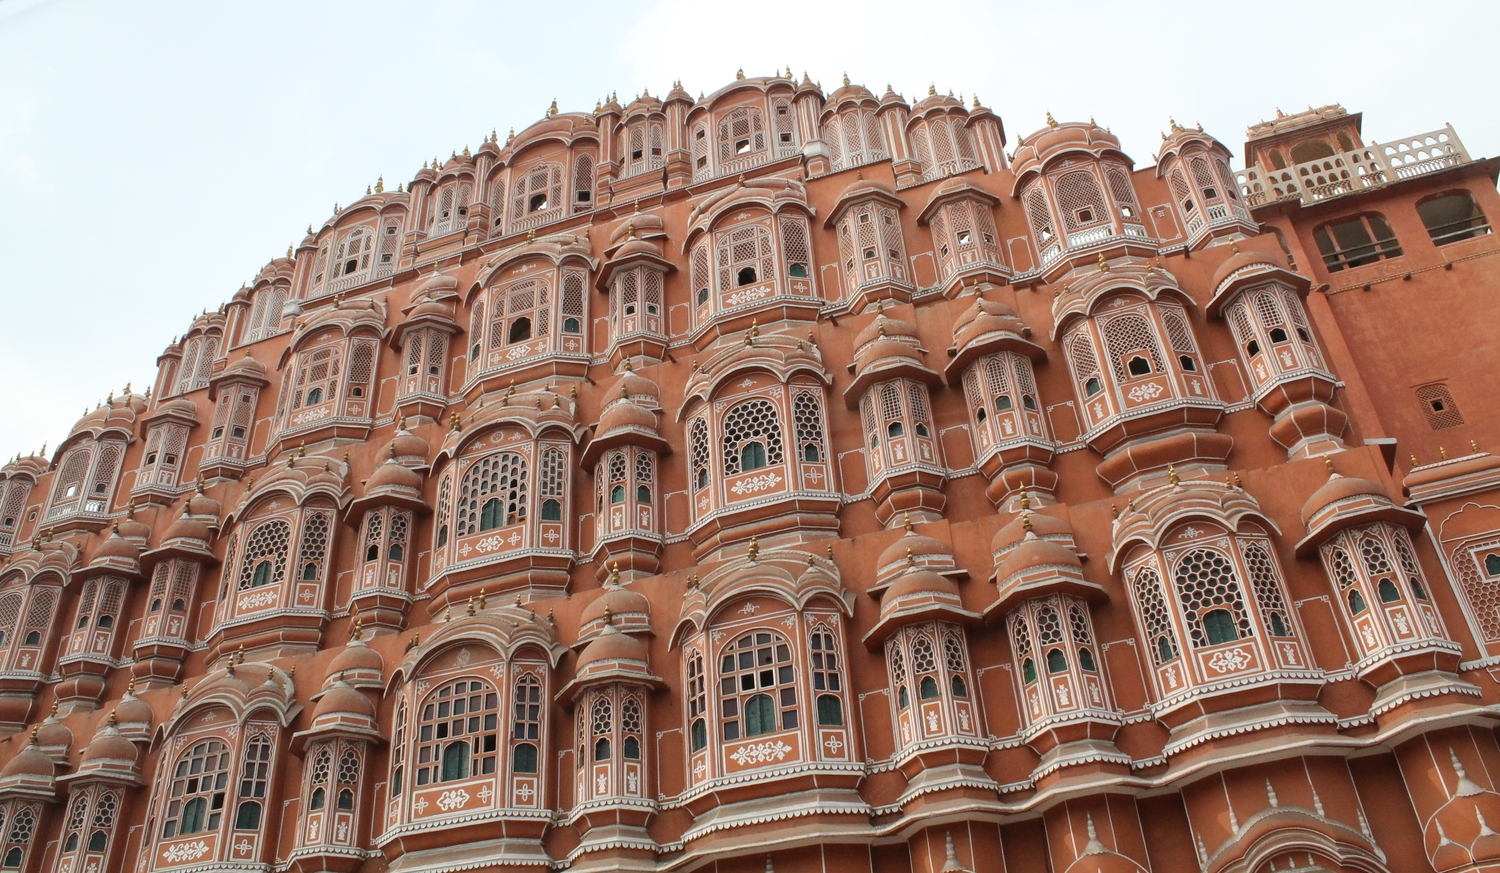 Hawa Mahal is often called the Palace of Winds